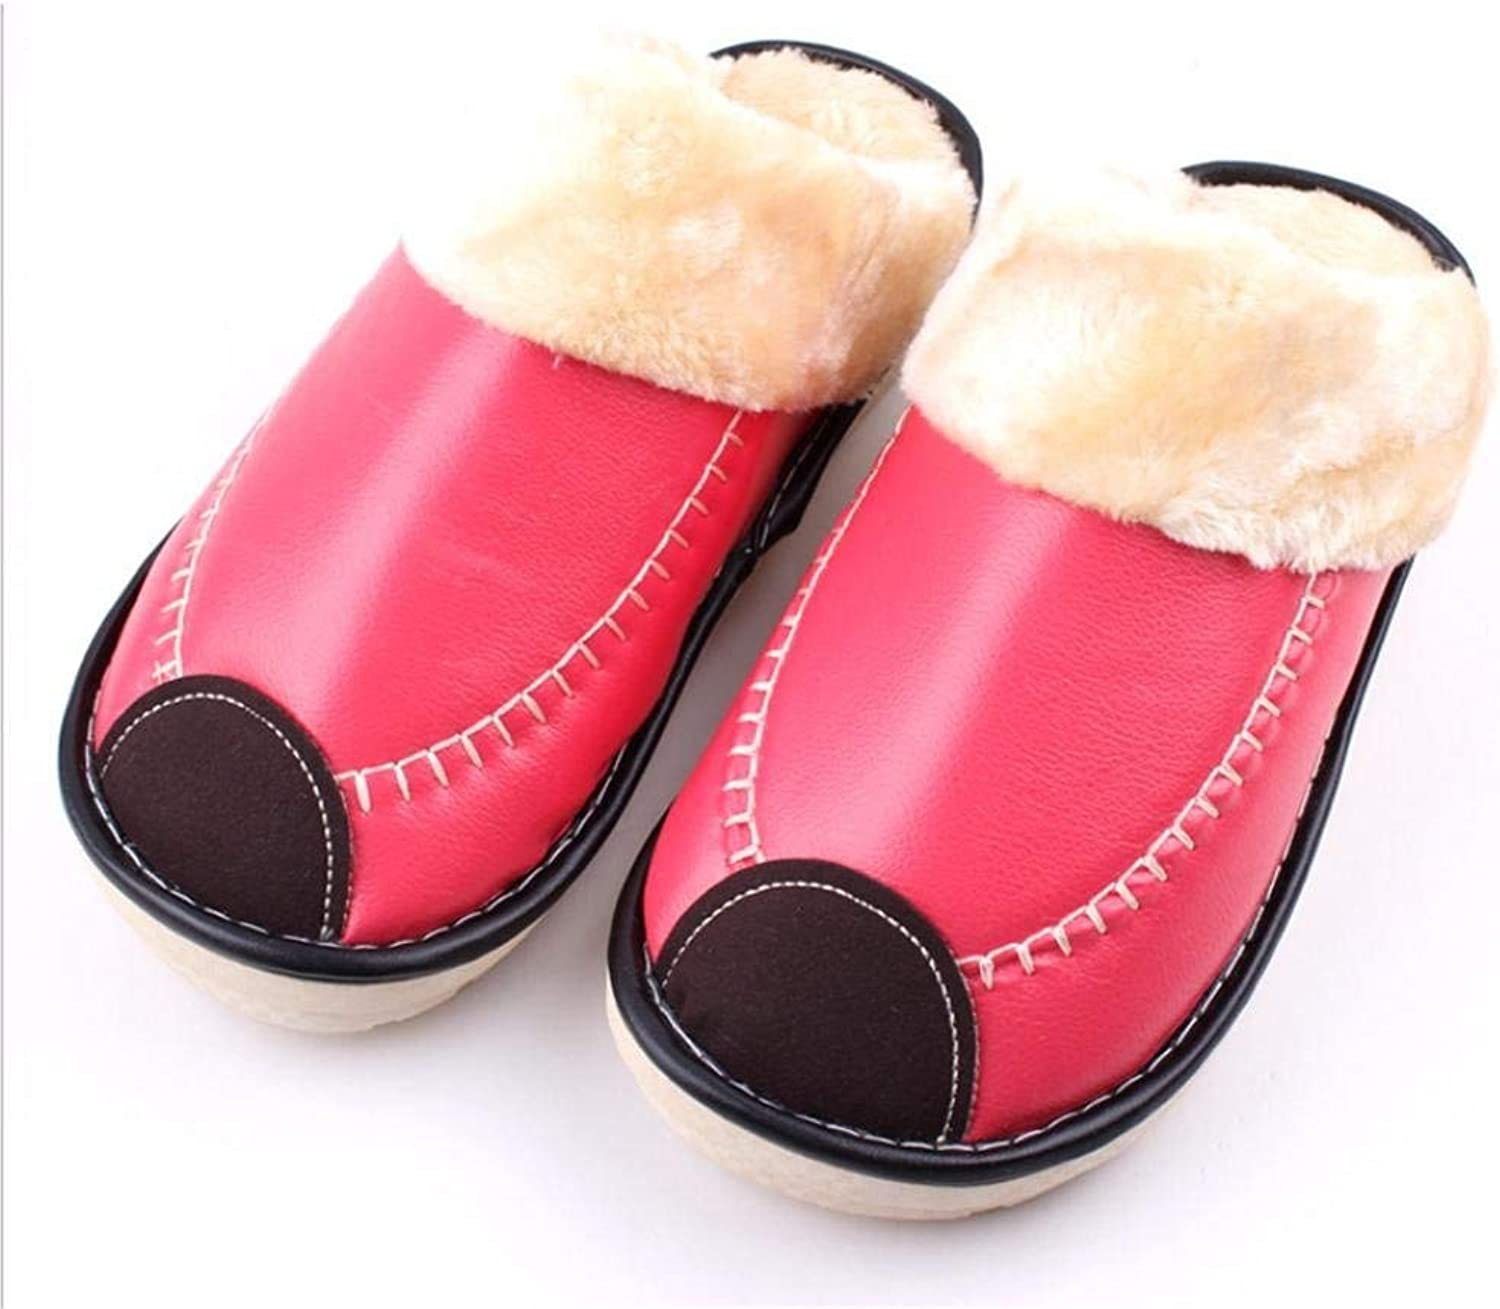 Lady Slippers Household Cotton Slippers Ladies Waterproof Non-Slip Artificial Leather for Fall Winter Keep Warm Yellow Pink Red bluee Slippers